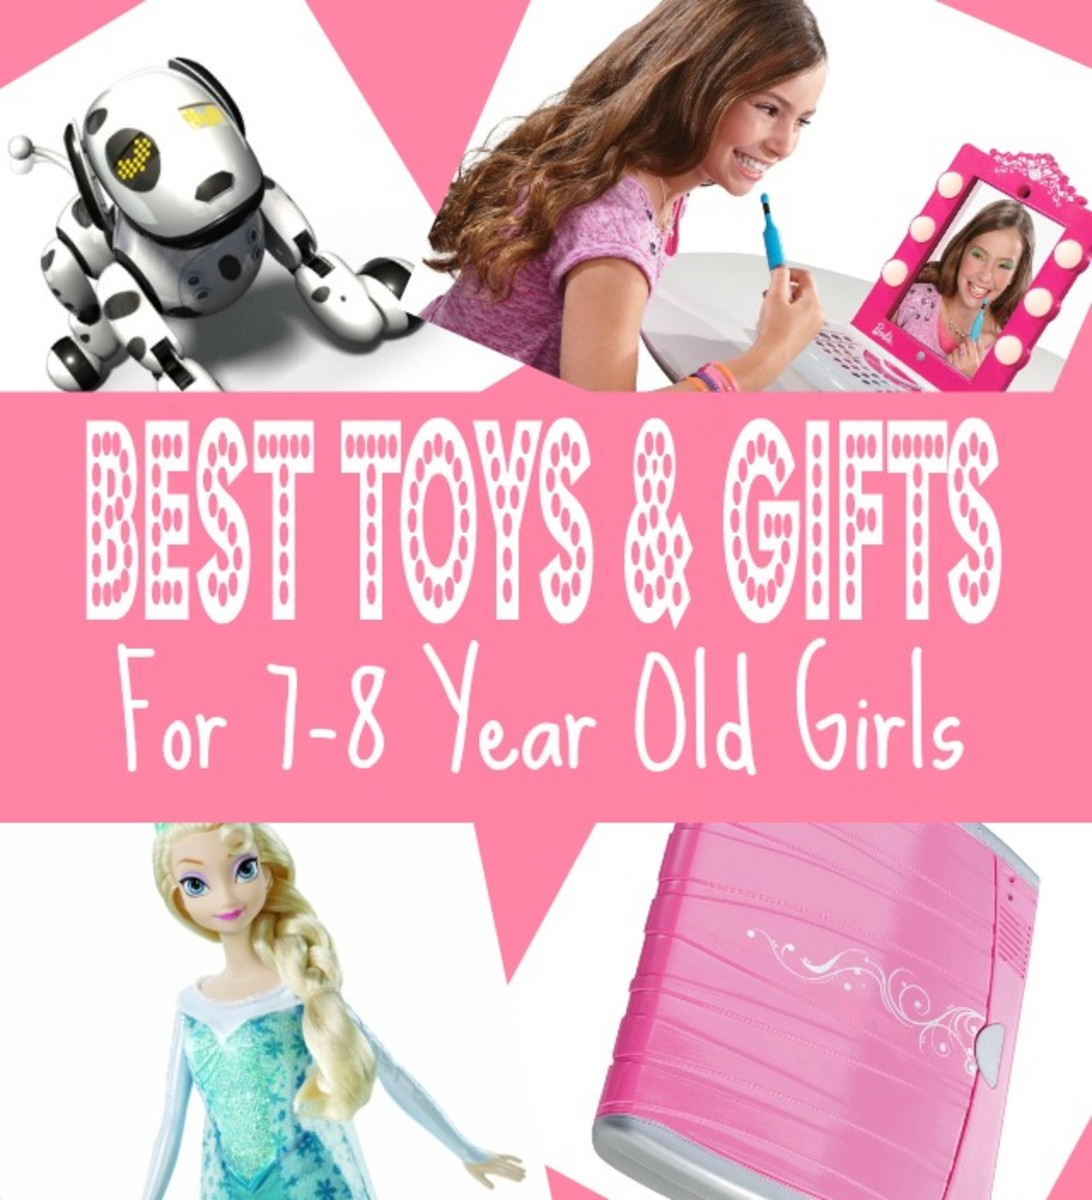 Best Gifts & Top Toys for 7 Year old Girls in 2015 - Christmas, Seventh Birthday and 7-8 Year Olds